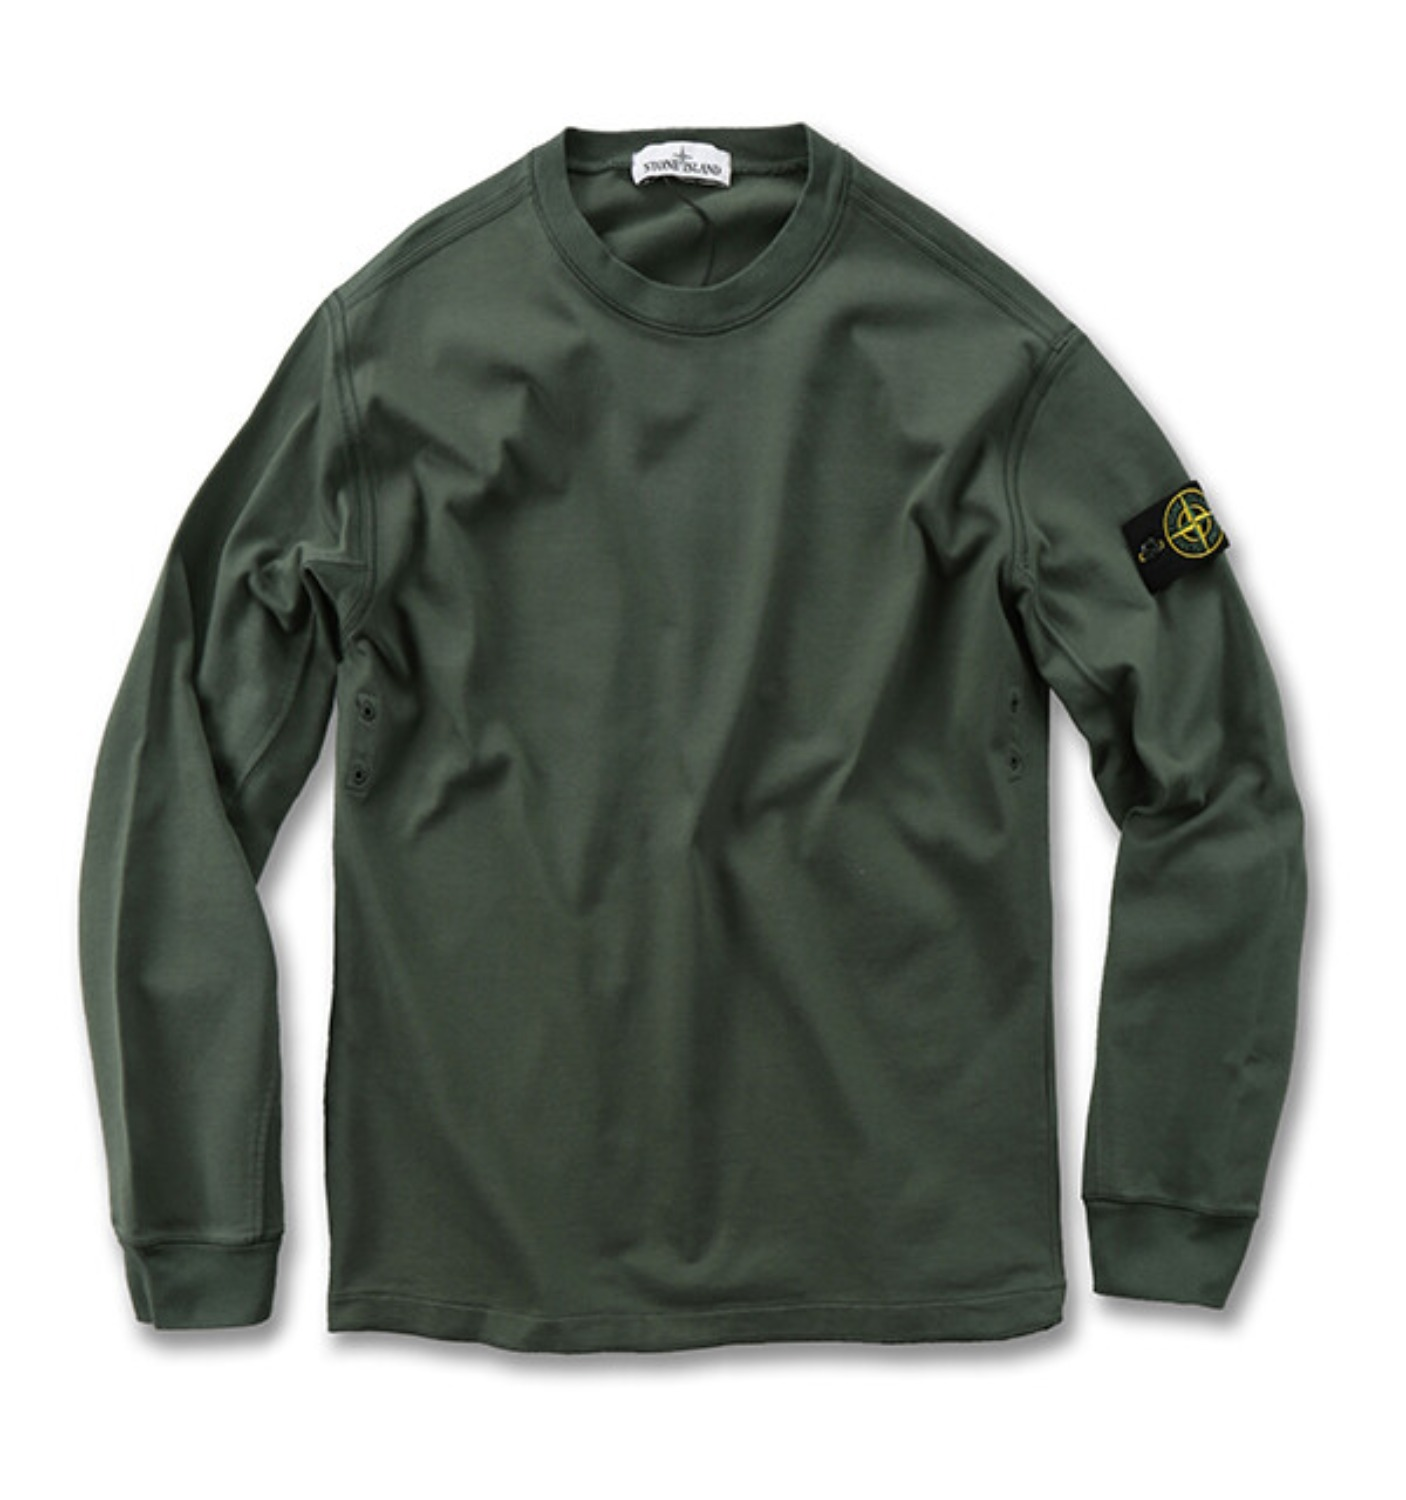 GARMENT DYED CREWNECK SWEATSHIRT GREEN